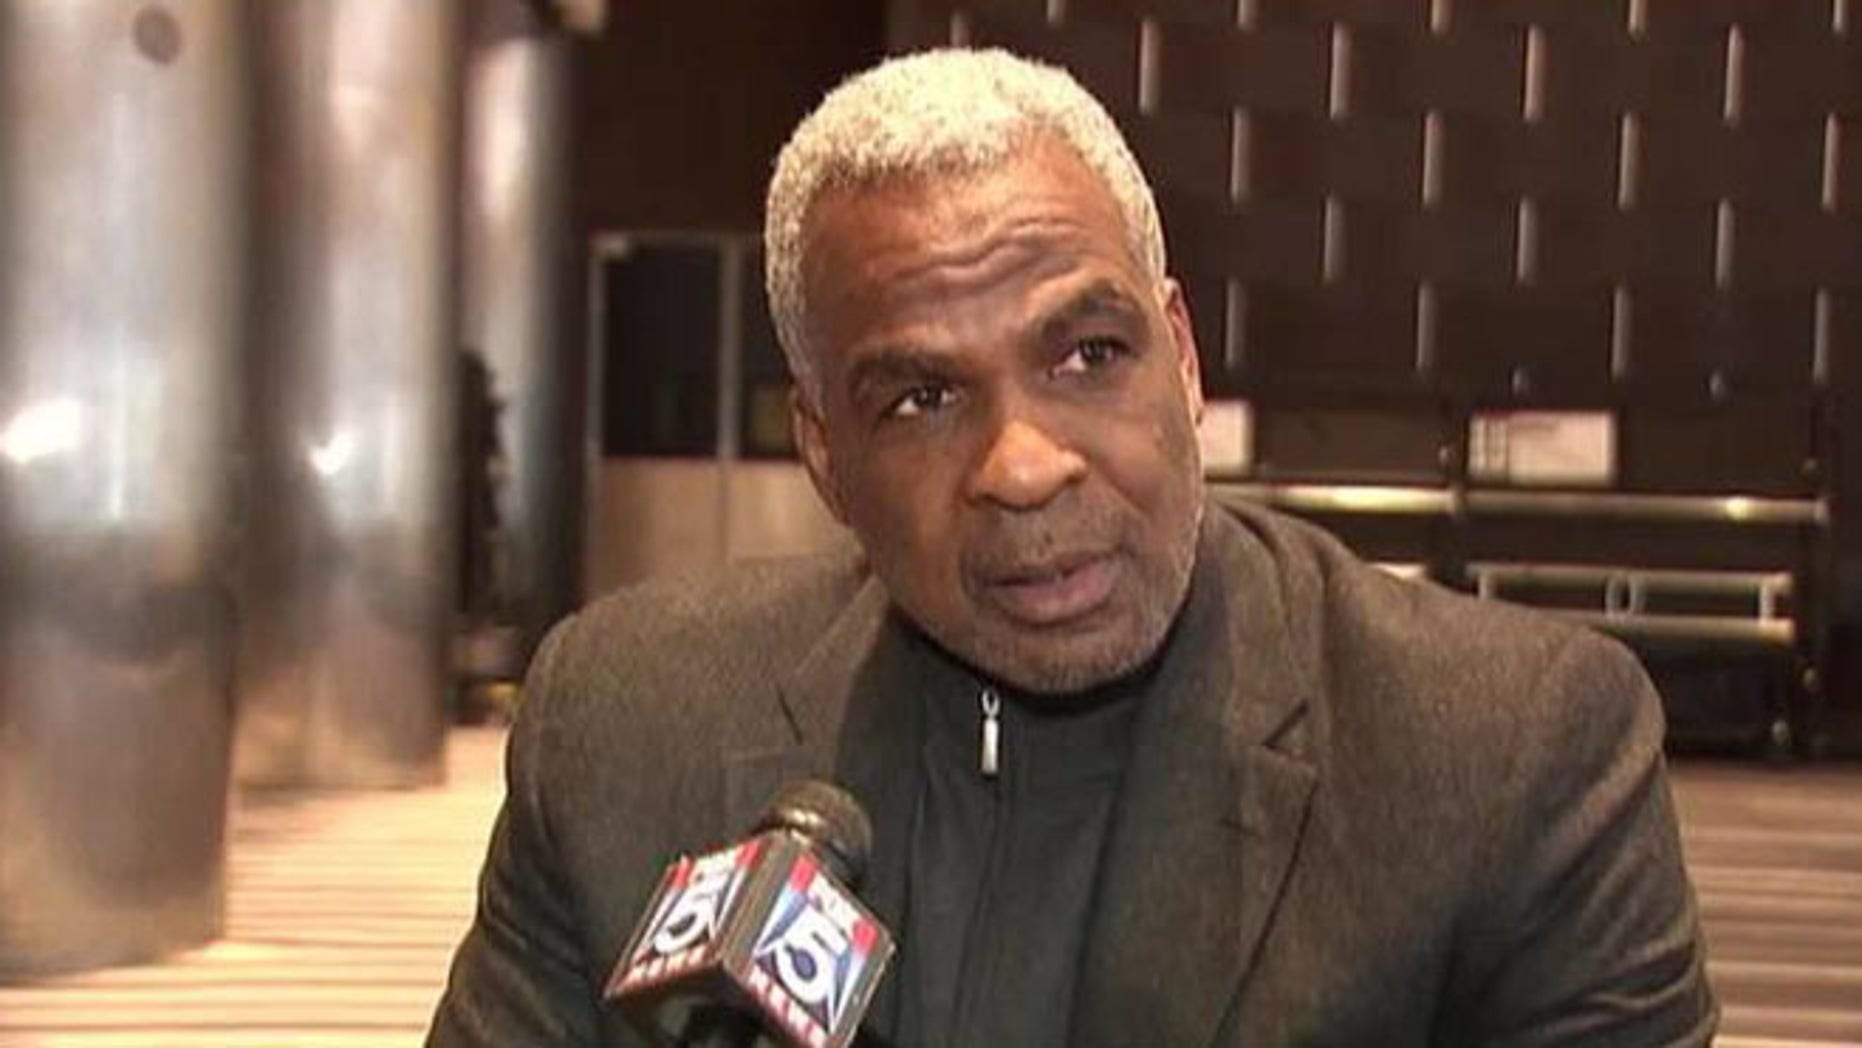 Charles Oakley discusses his altercation at Madison Square Garden during NY Knicks game. (Fox 5 New York)